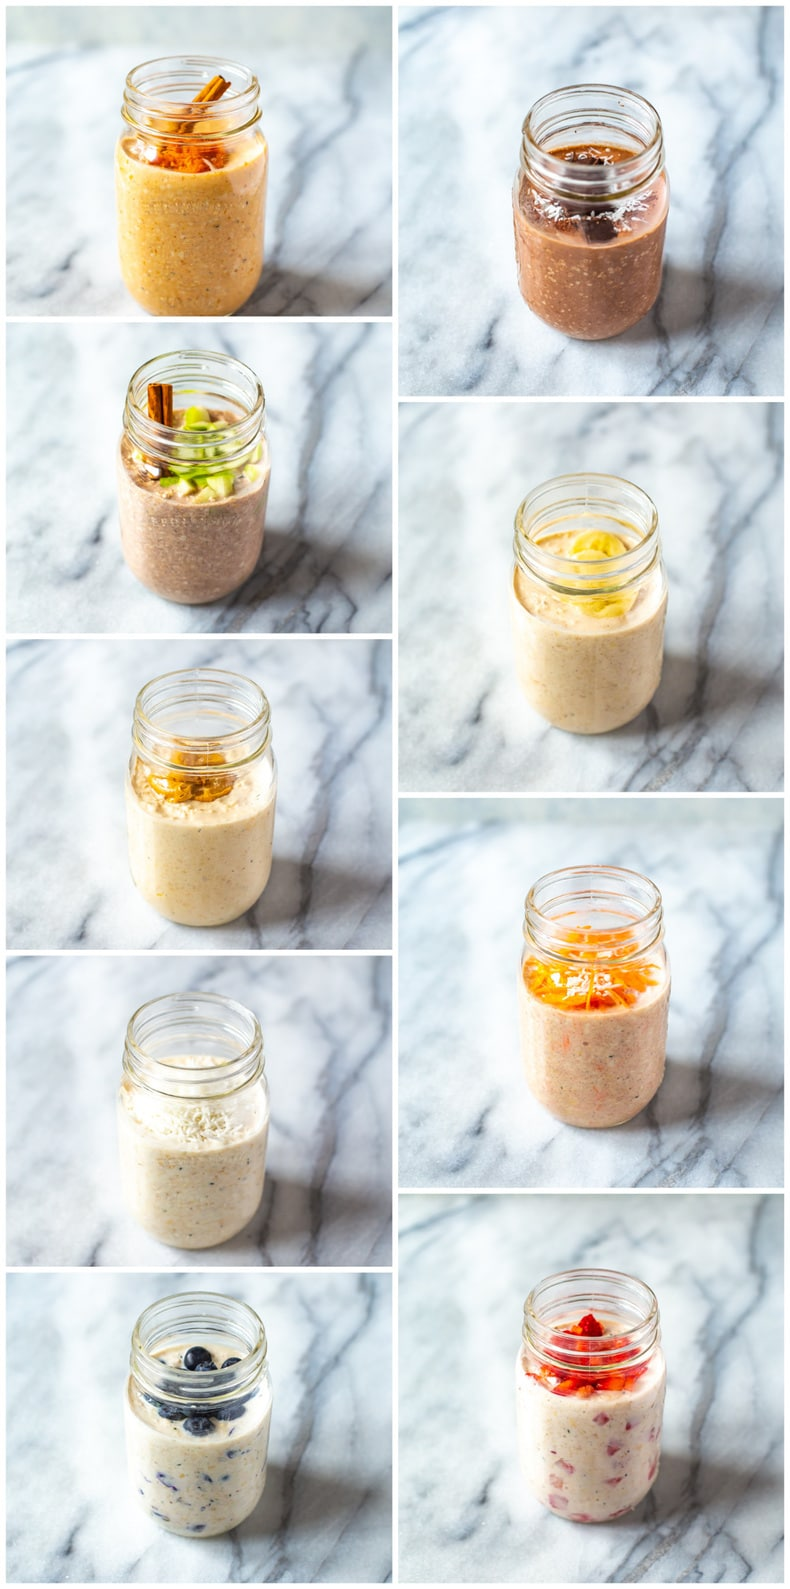 Overnight Oats 9 Ways - Easiest Recipes and Tips!